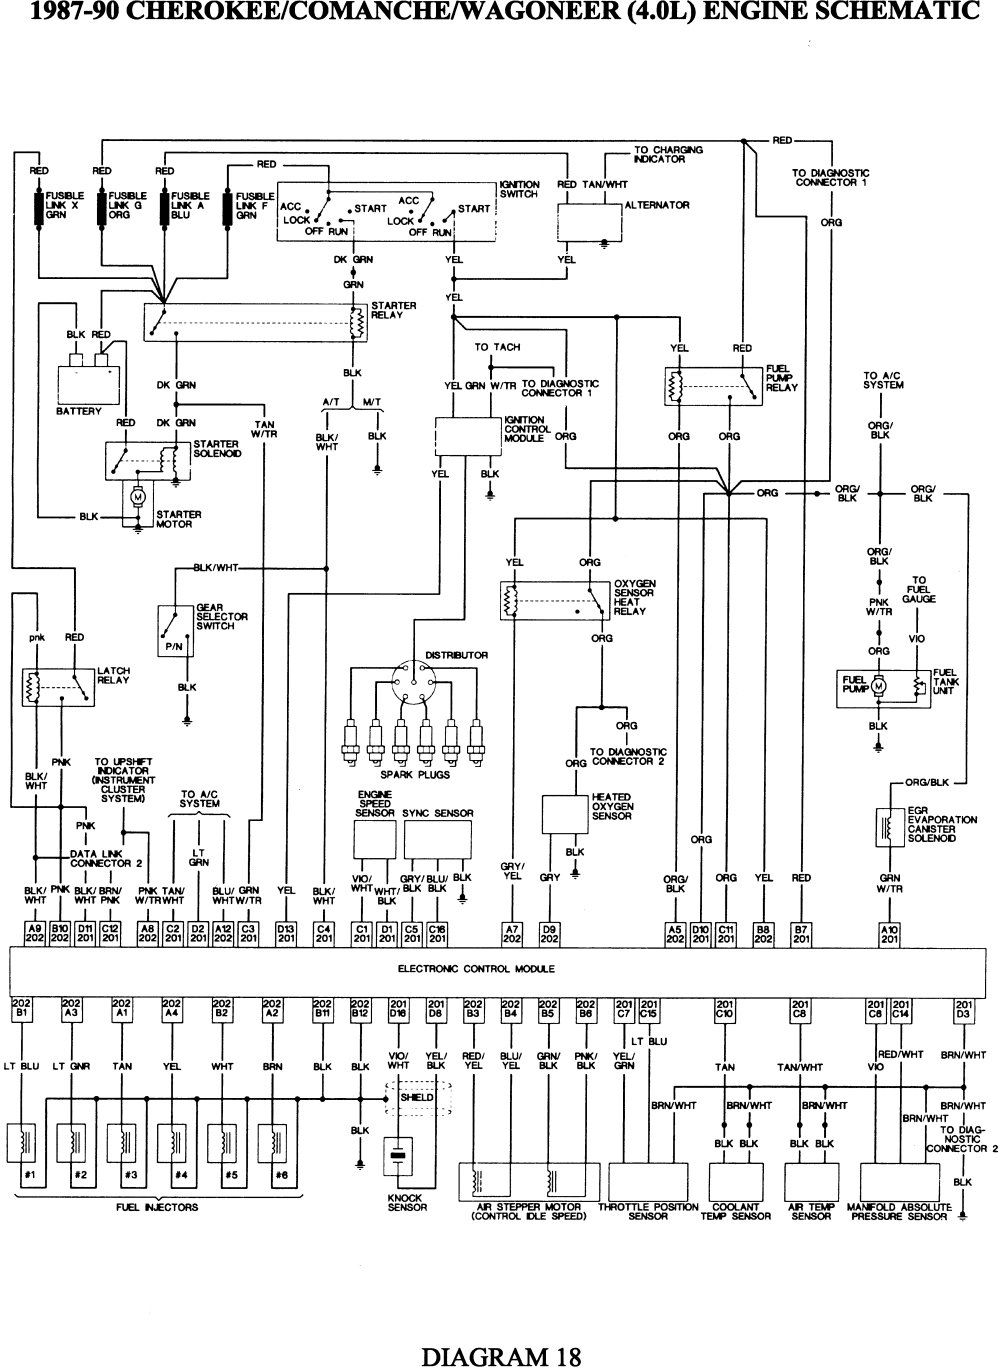 87 Wrangler Wiring Diagram Wiring Diagram